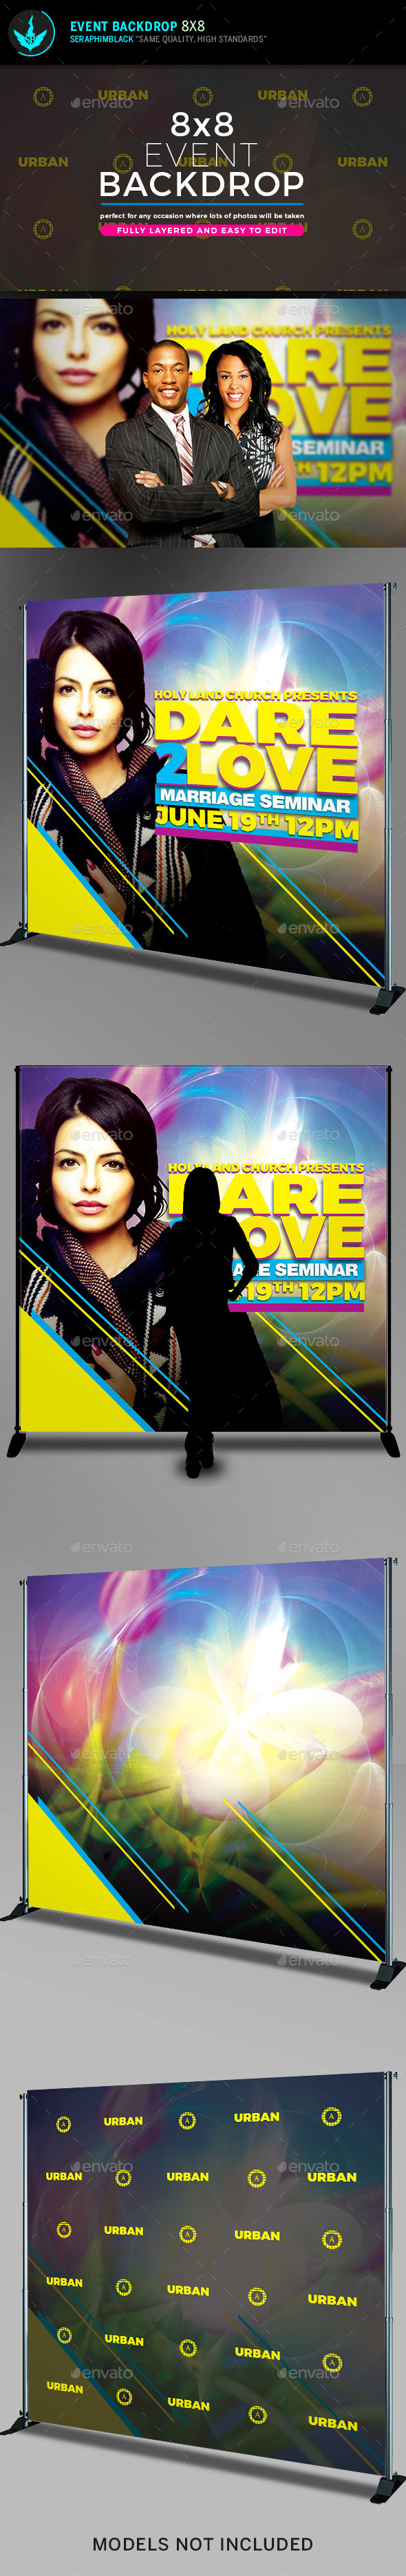 Dare 2 Love 8x8 Backdrop Template - Signage Print Templates